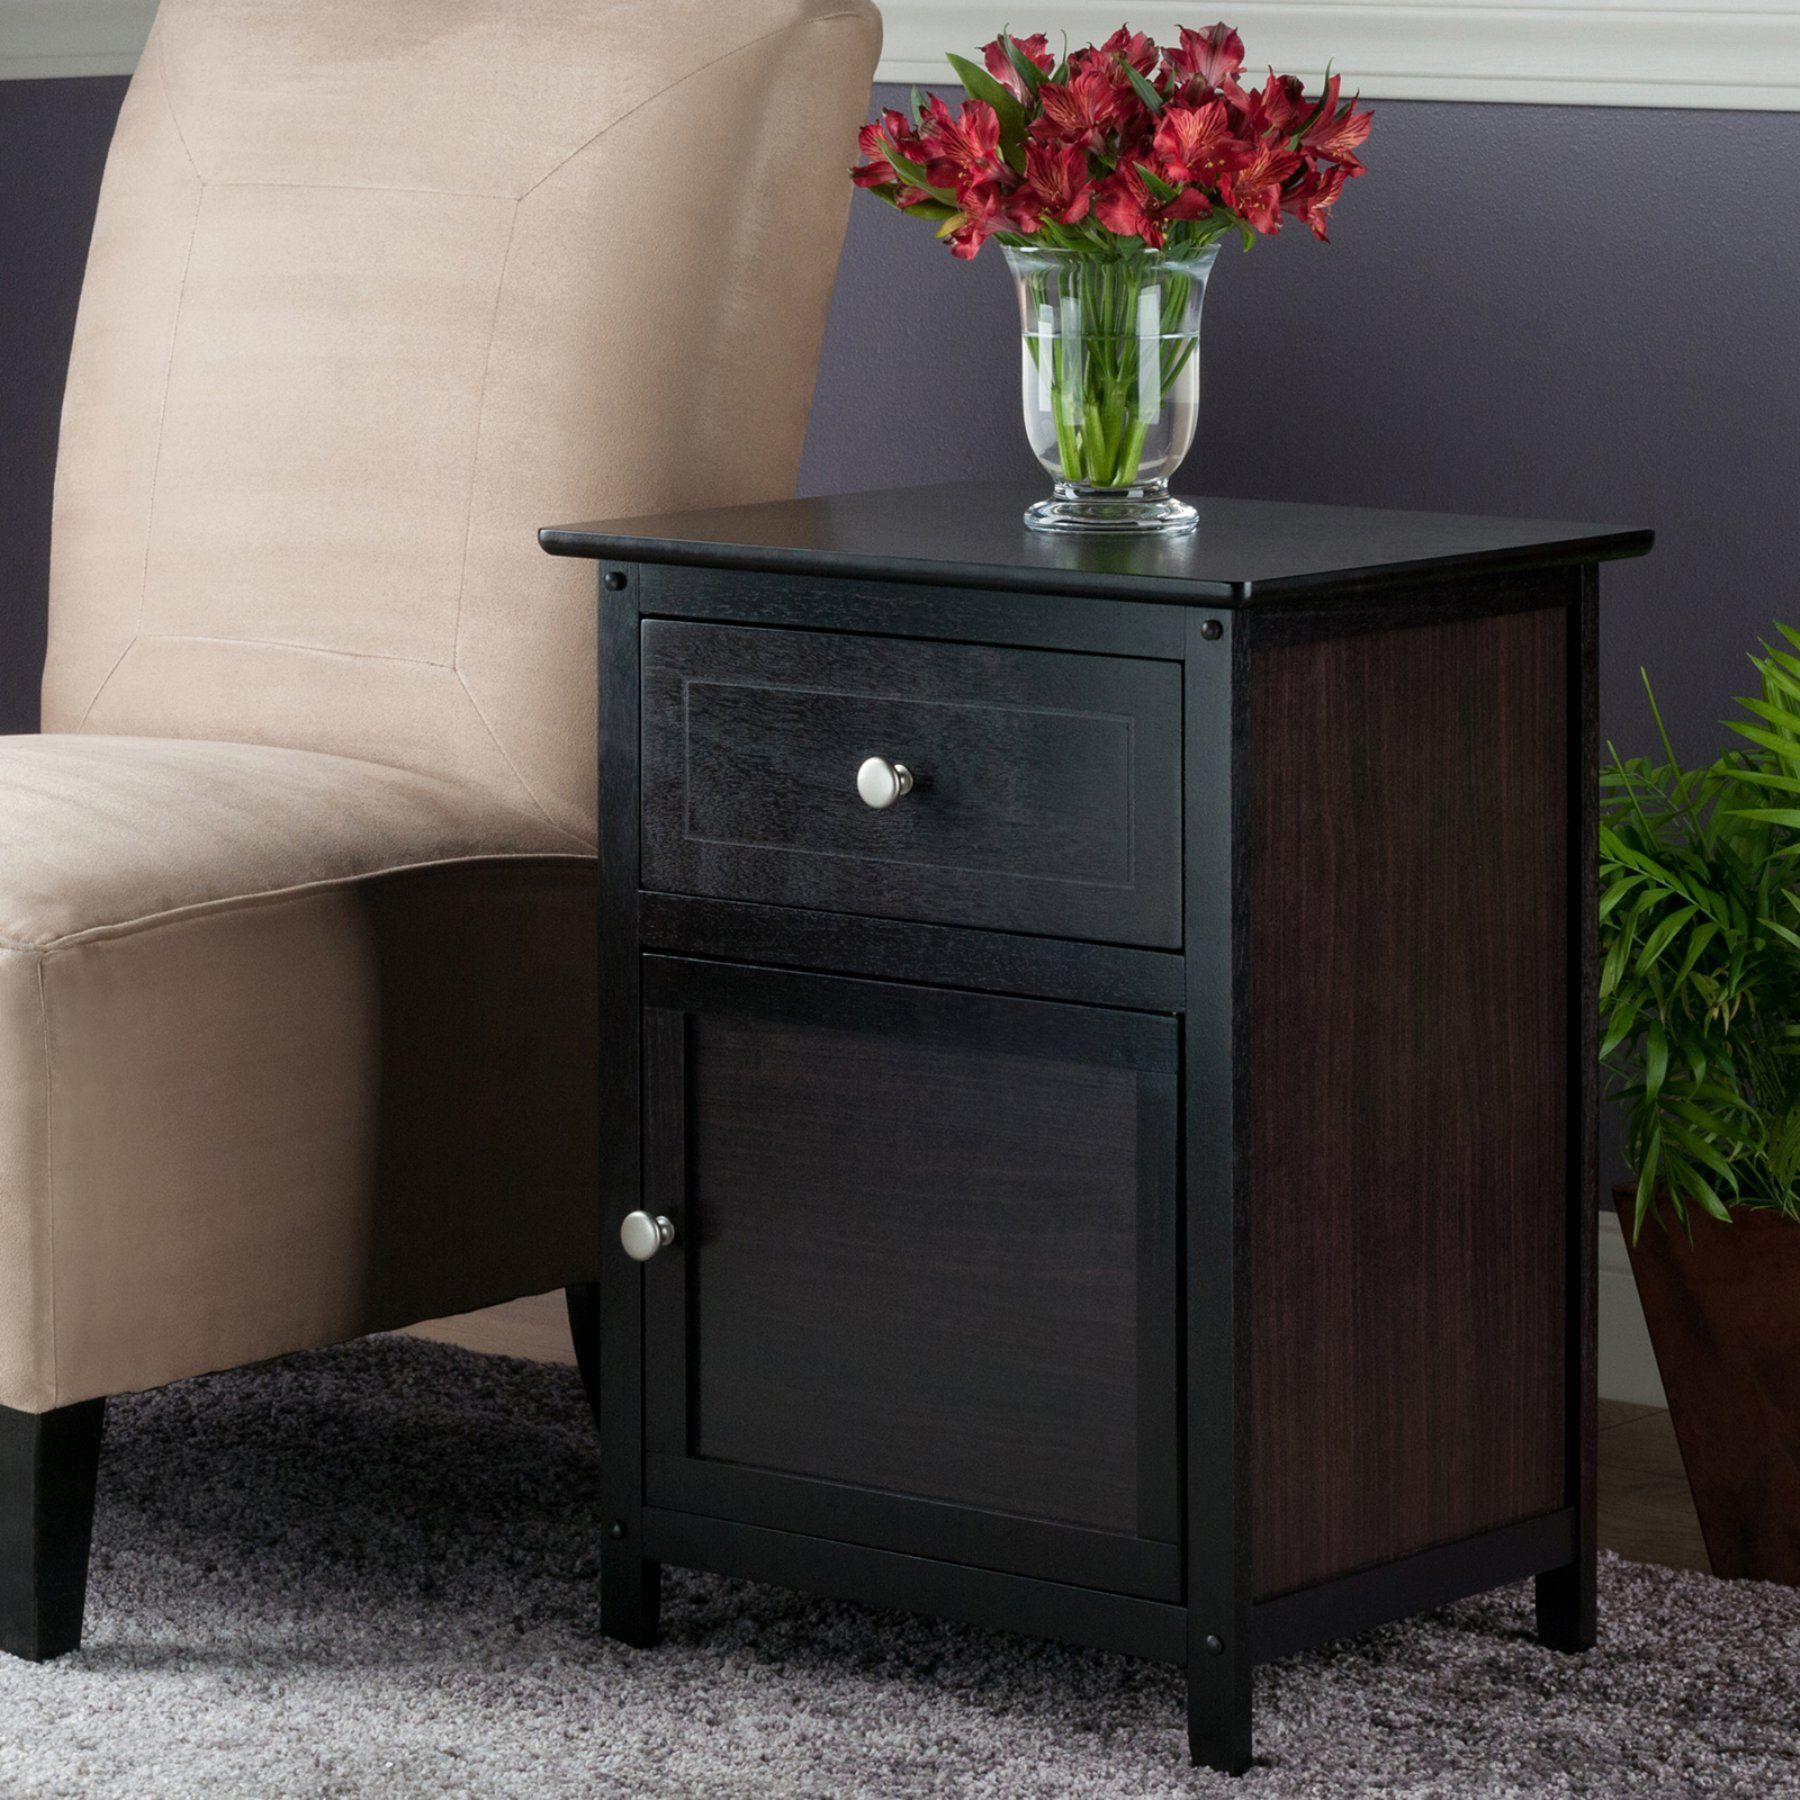 Winsome Trading Espresso End Table With 1 Drawer And Cabinet